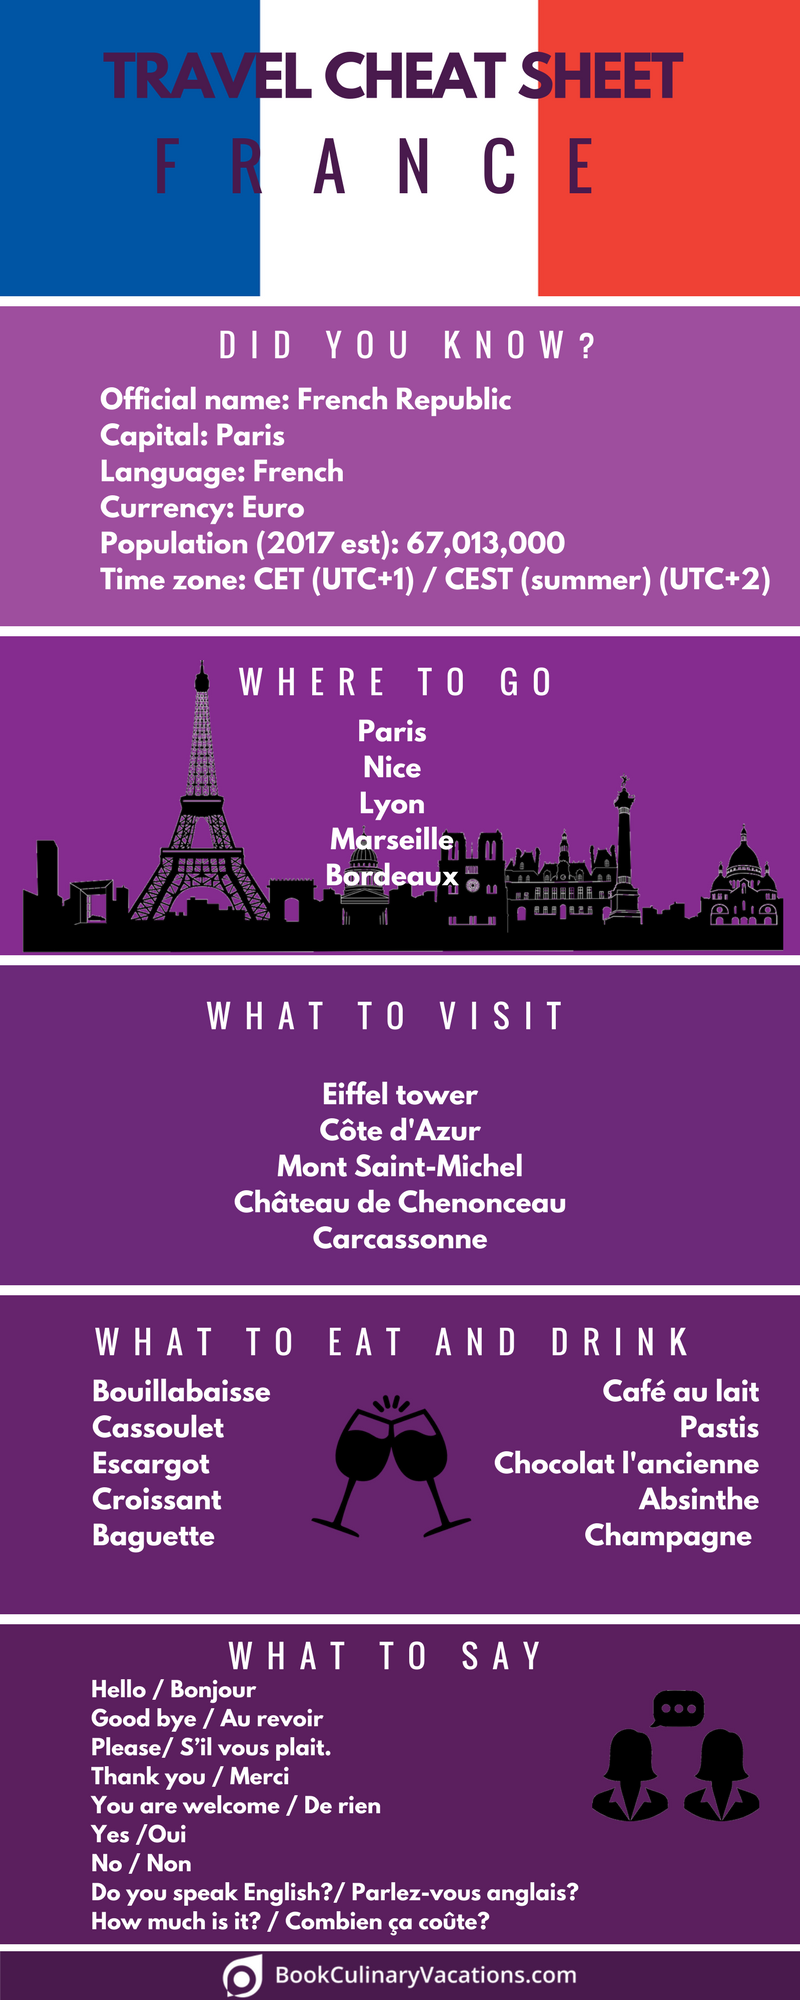 Culinary Travel Cheat Sheet - France